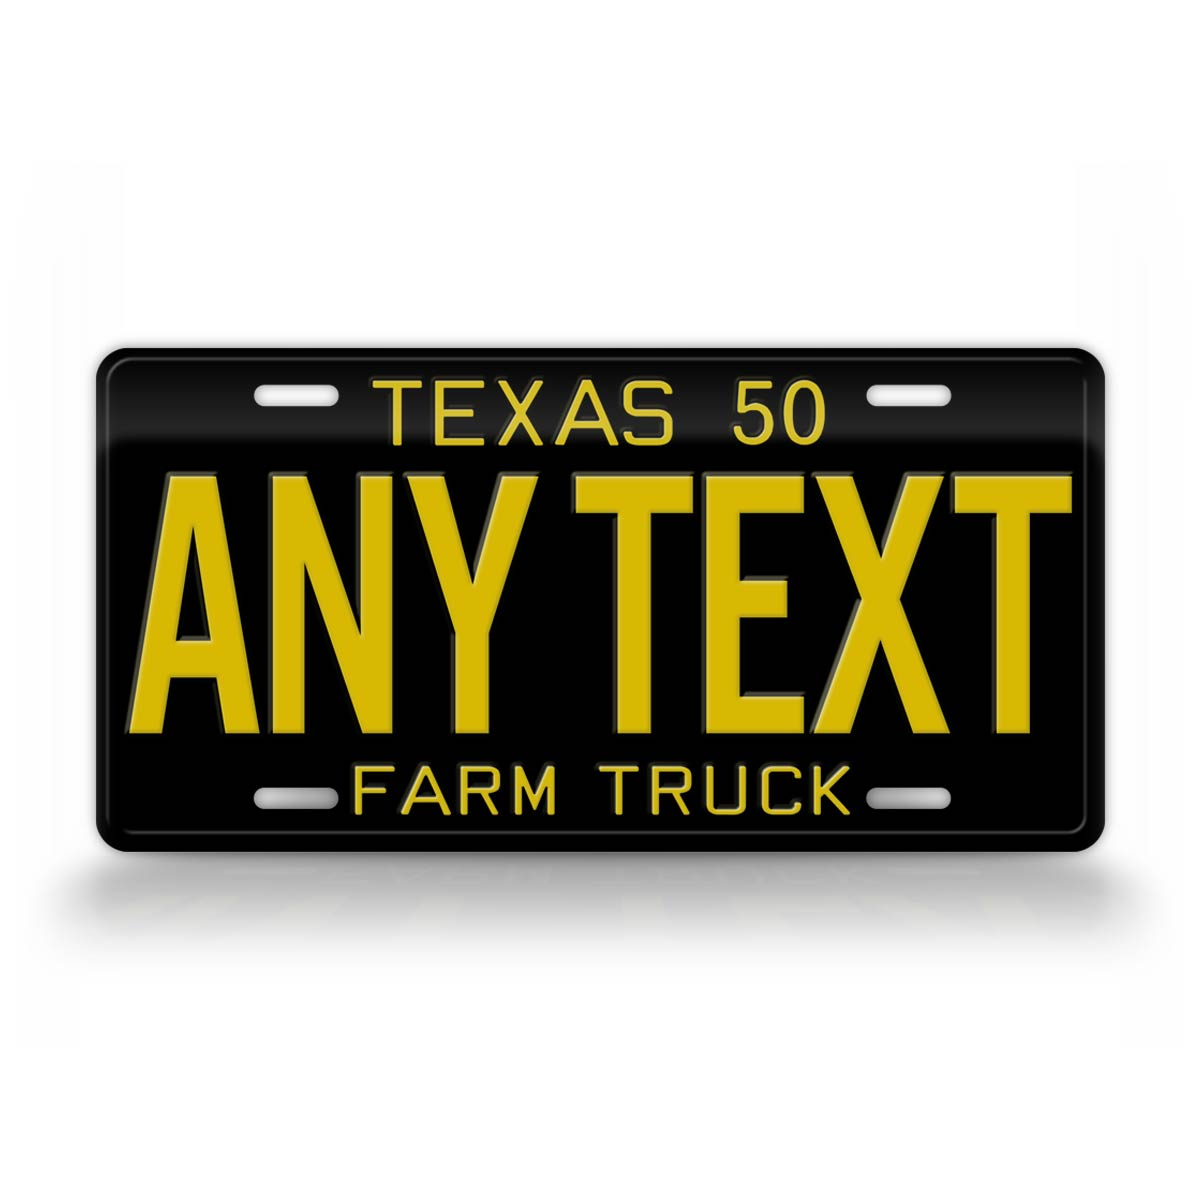 Vintage 1950 Style Texas Farm Truck License Plate